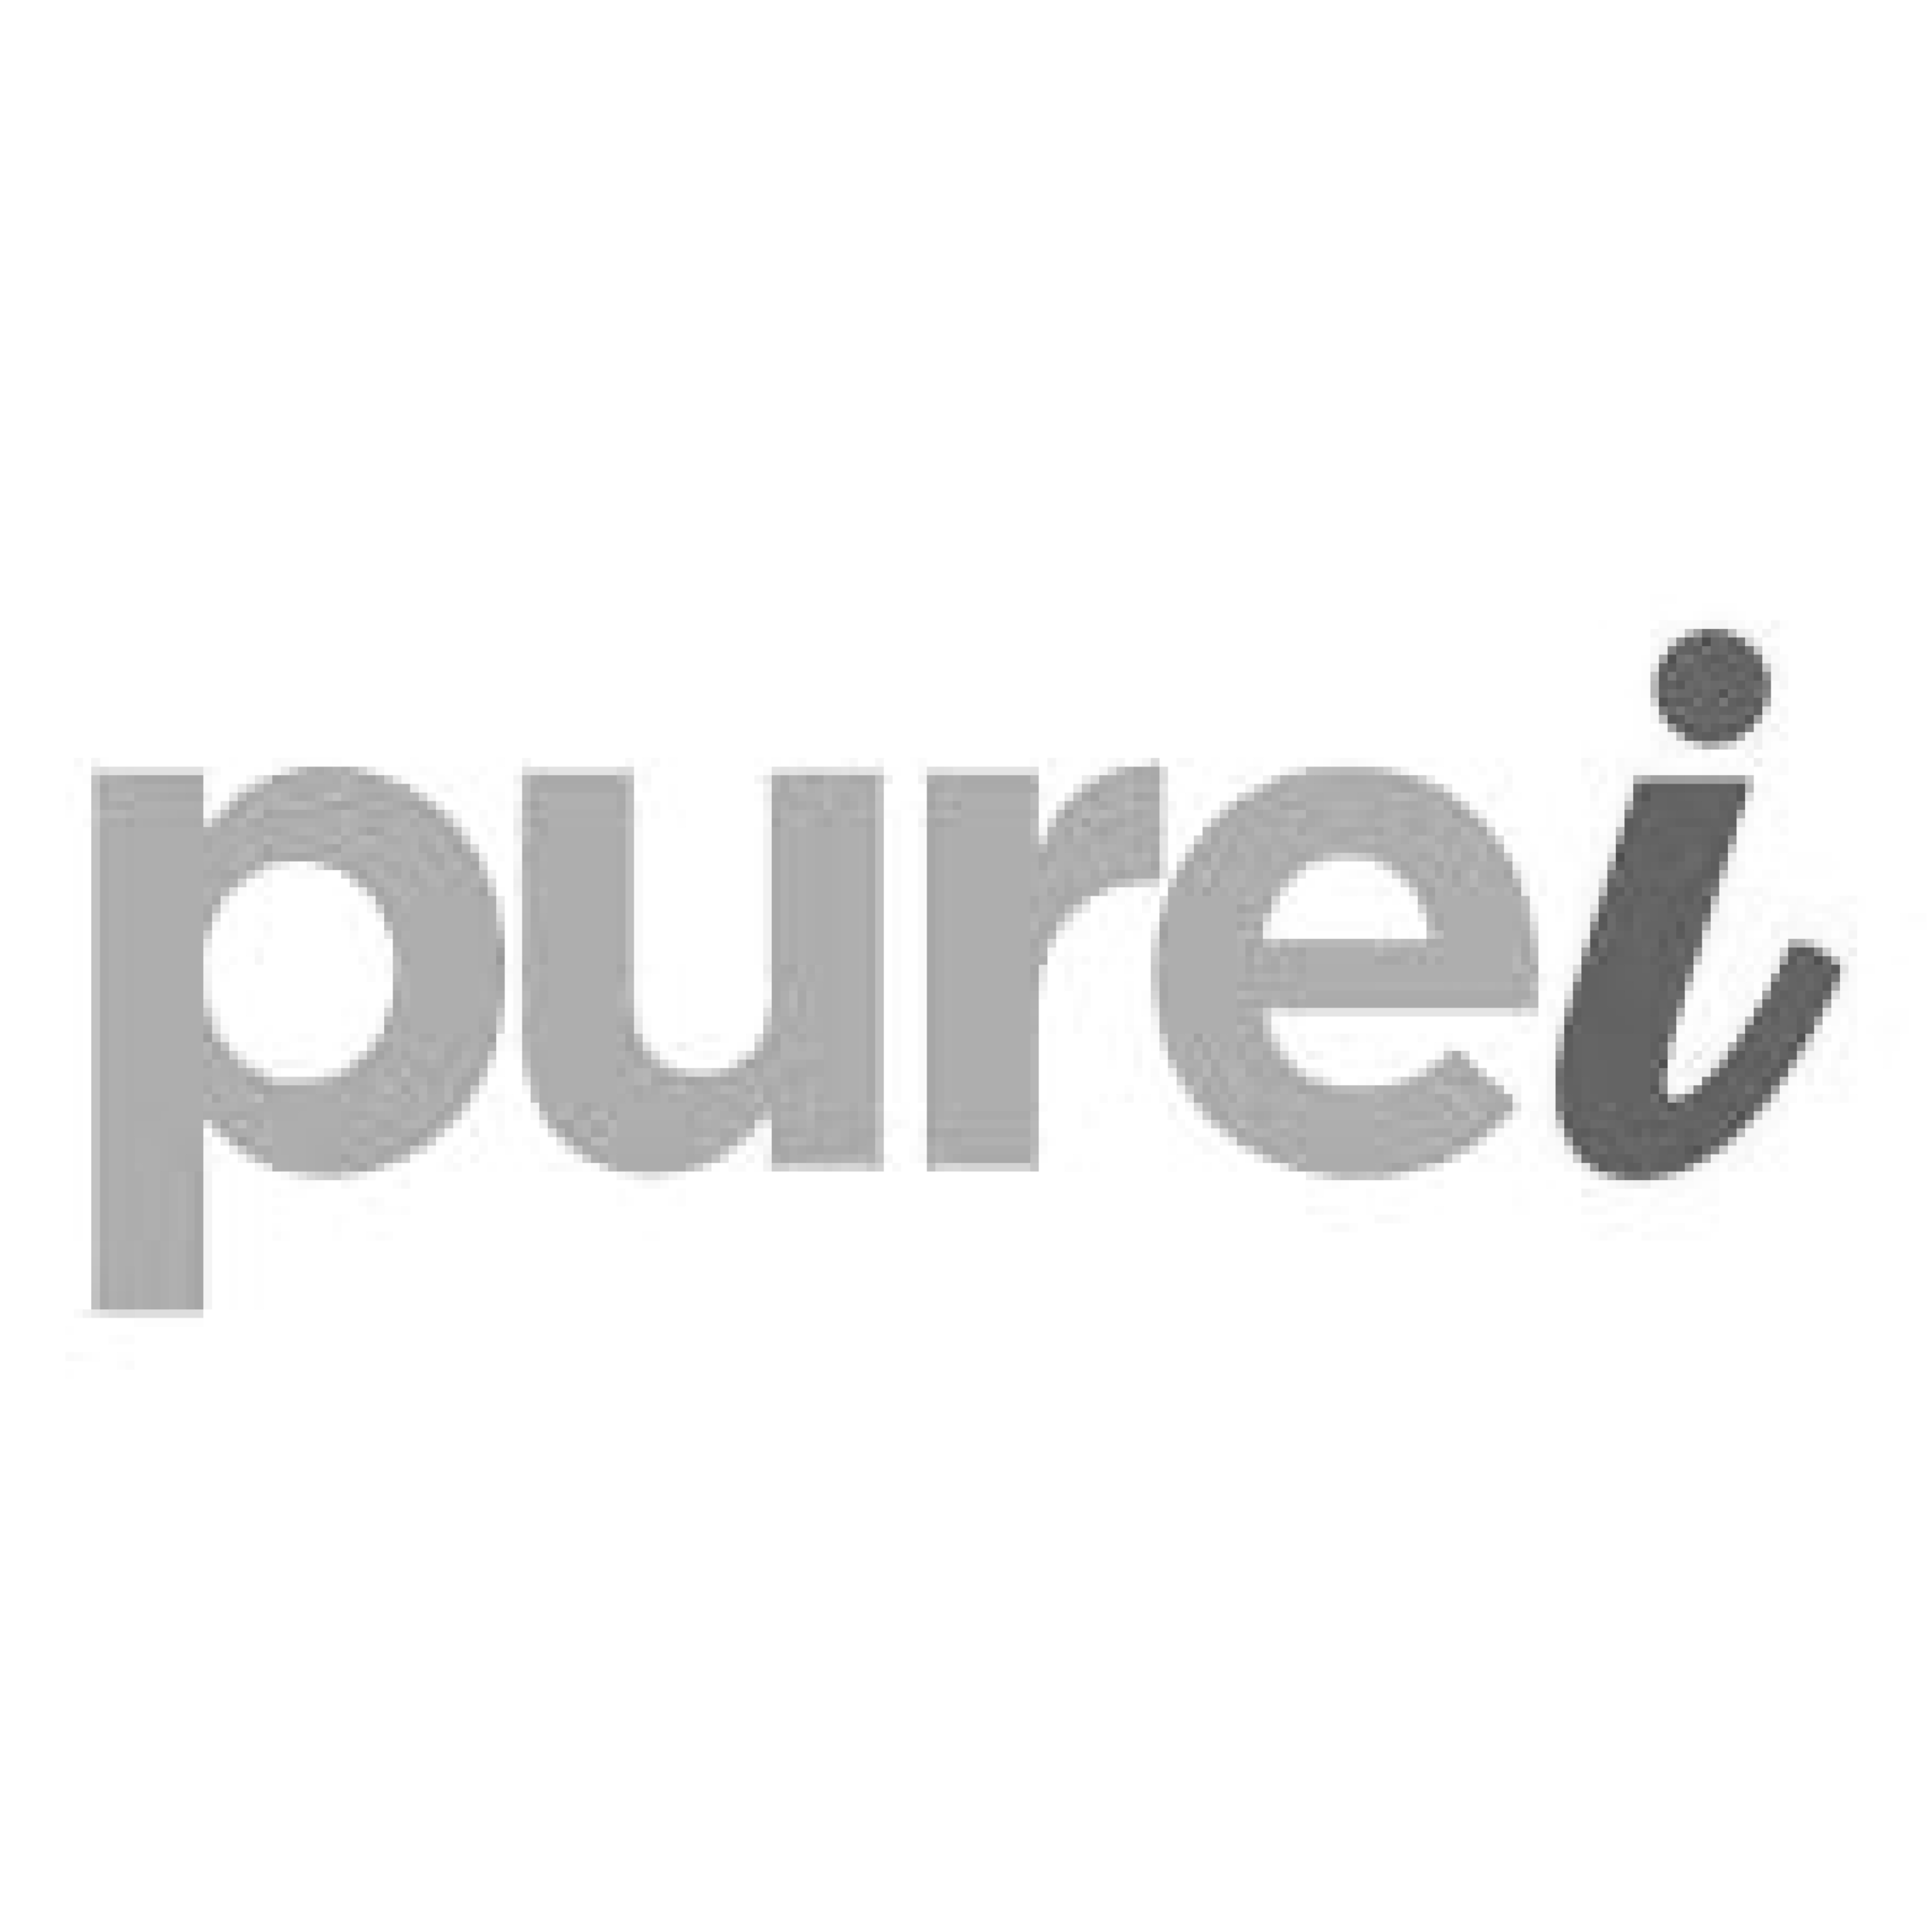 PUREi 2.png